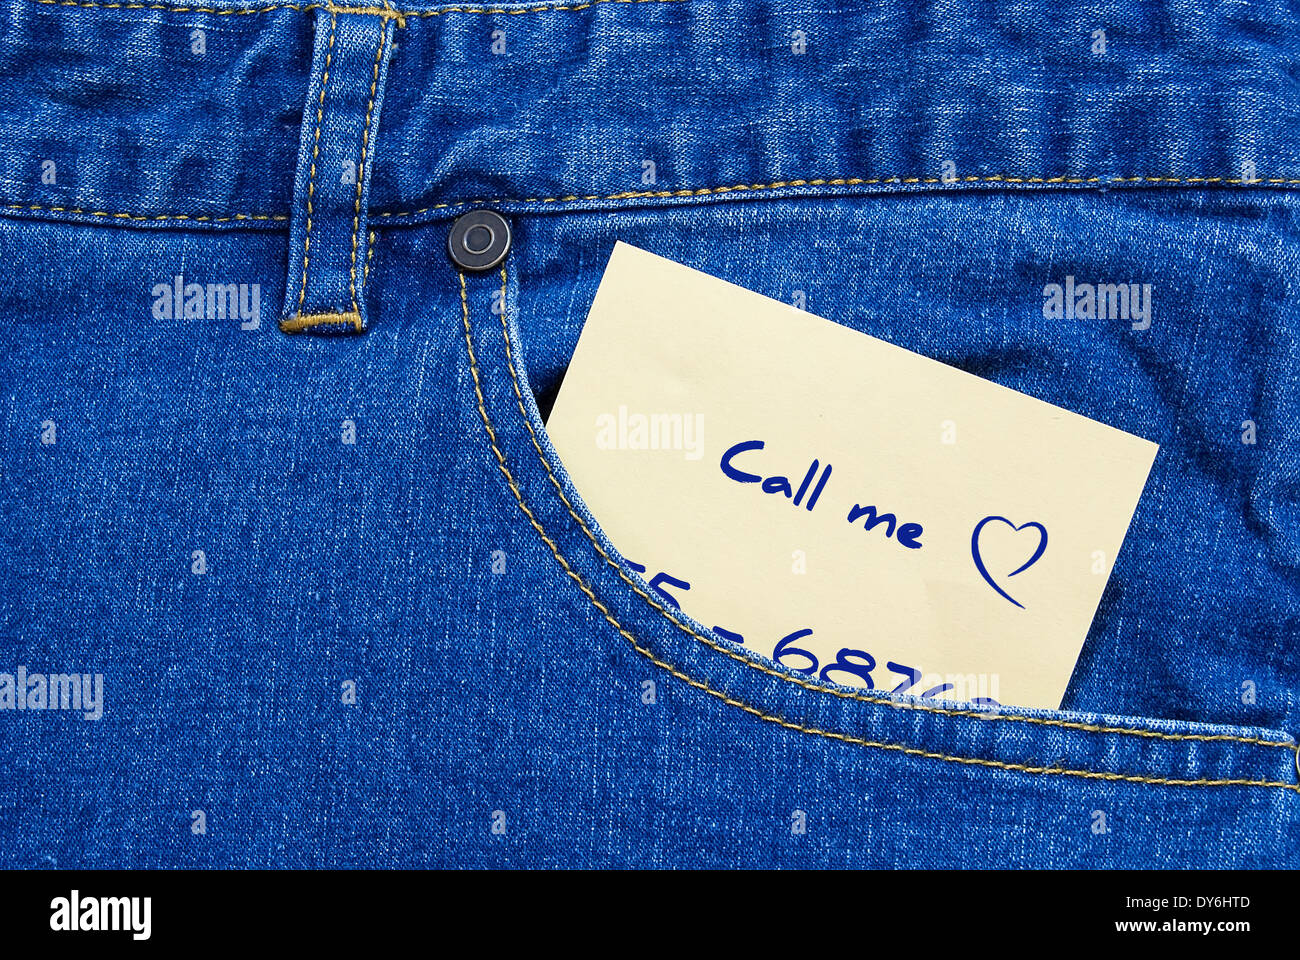 phone number written on a yellow posit a jeans pocket - Stock Image